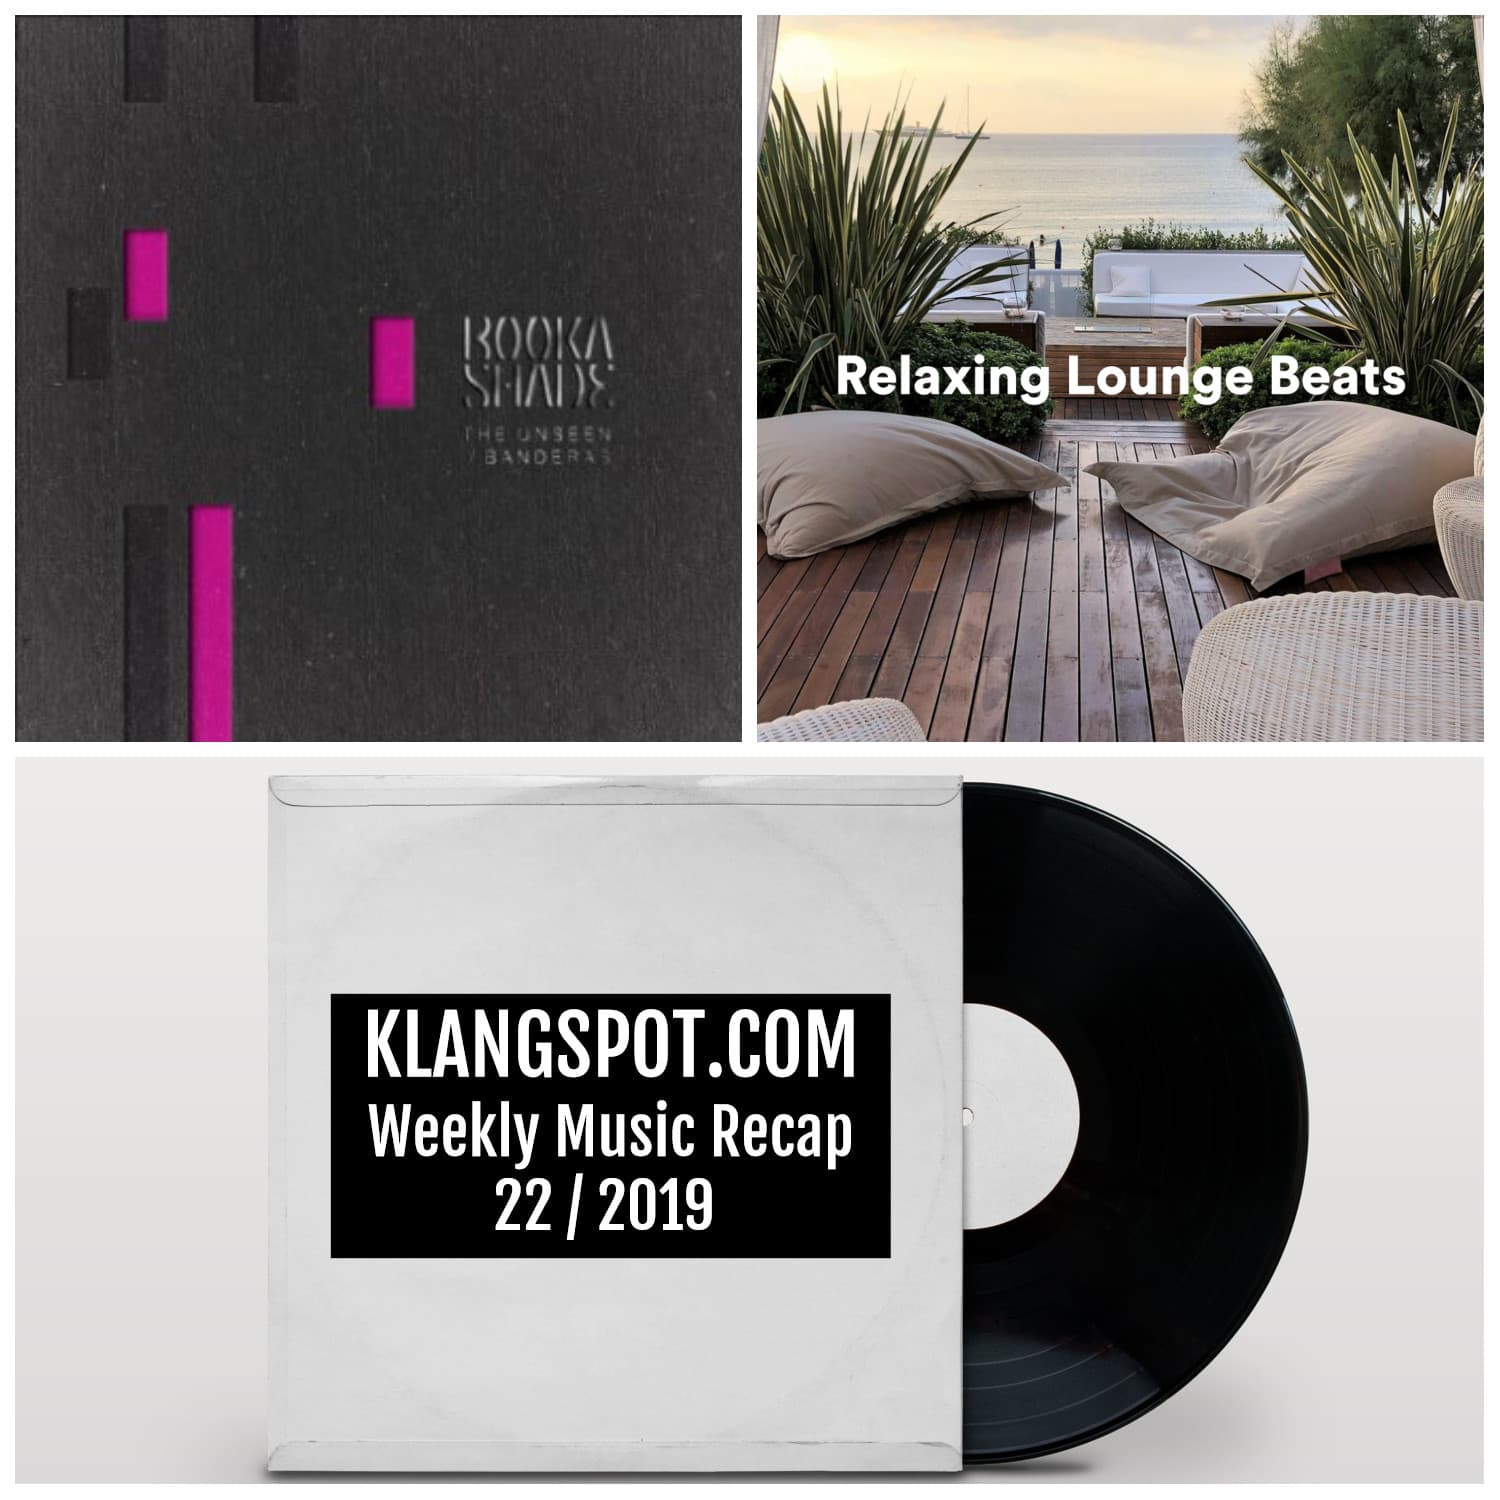 Weekly Music Recap | Week 22/2019: Relaxing Lounge Beats / Booka Shade - 'The Unseen'